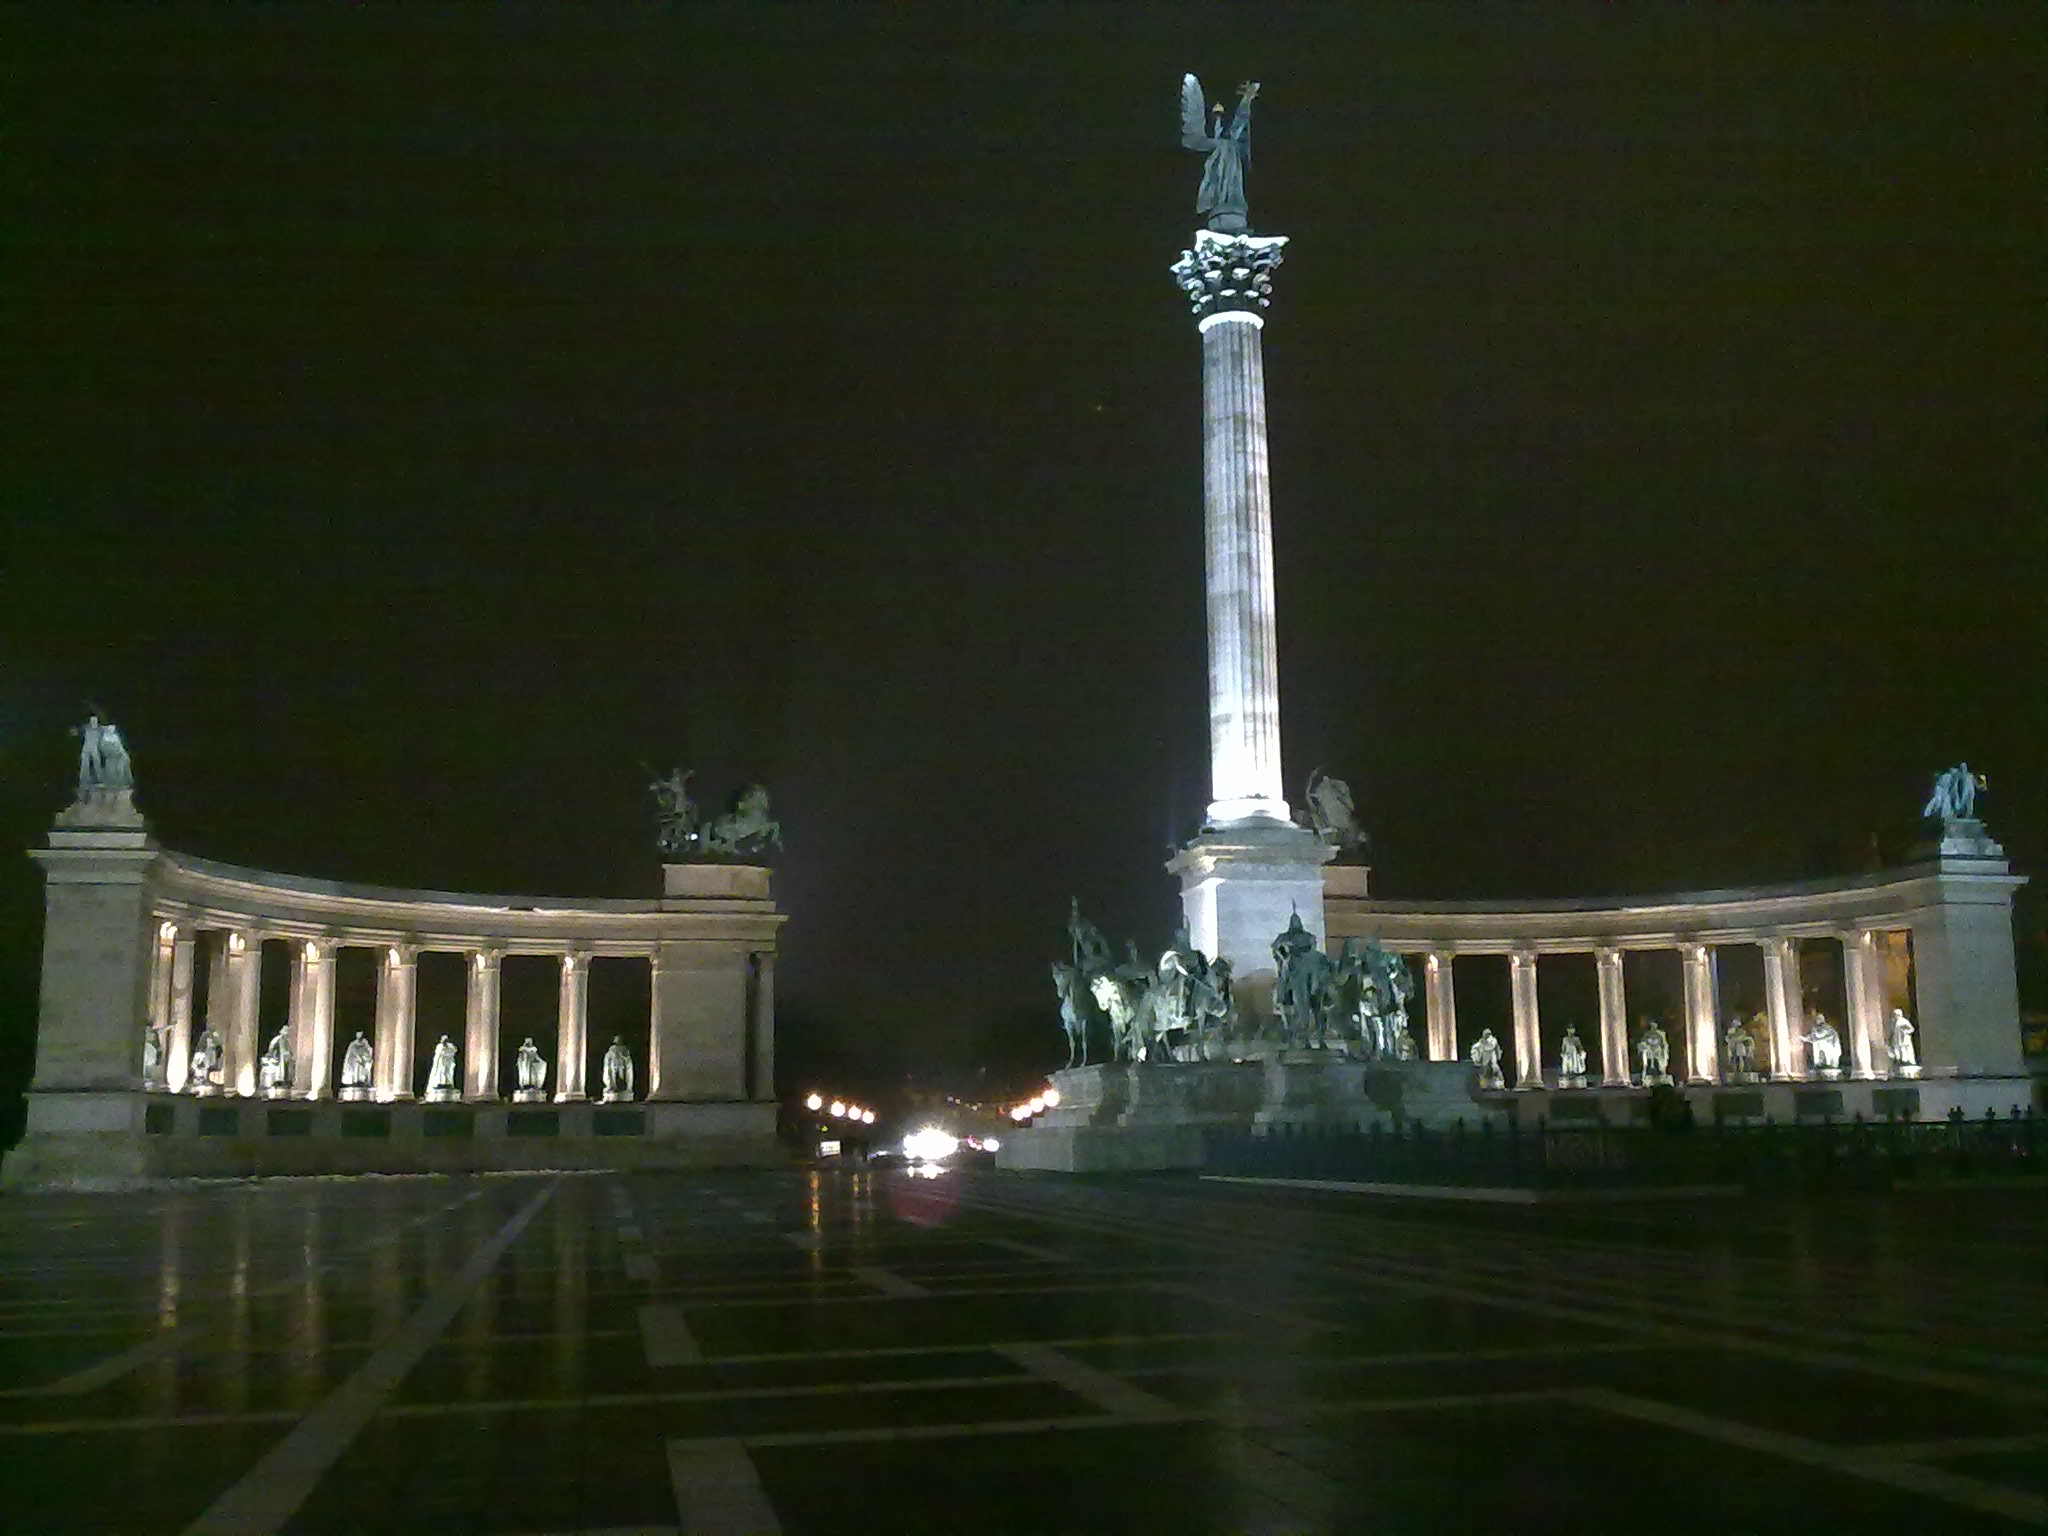 Budapest hero square at night